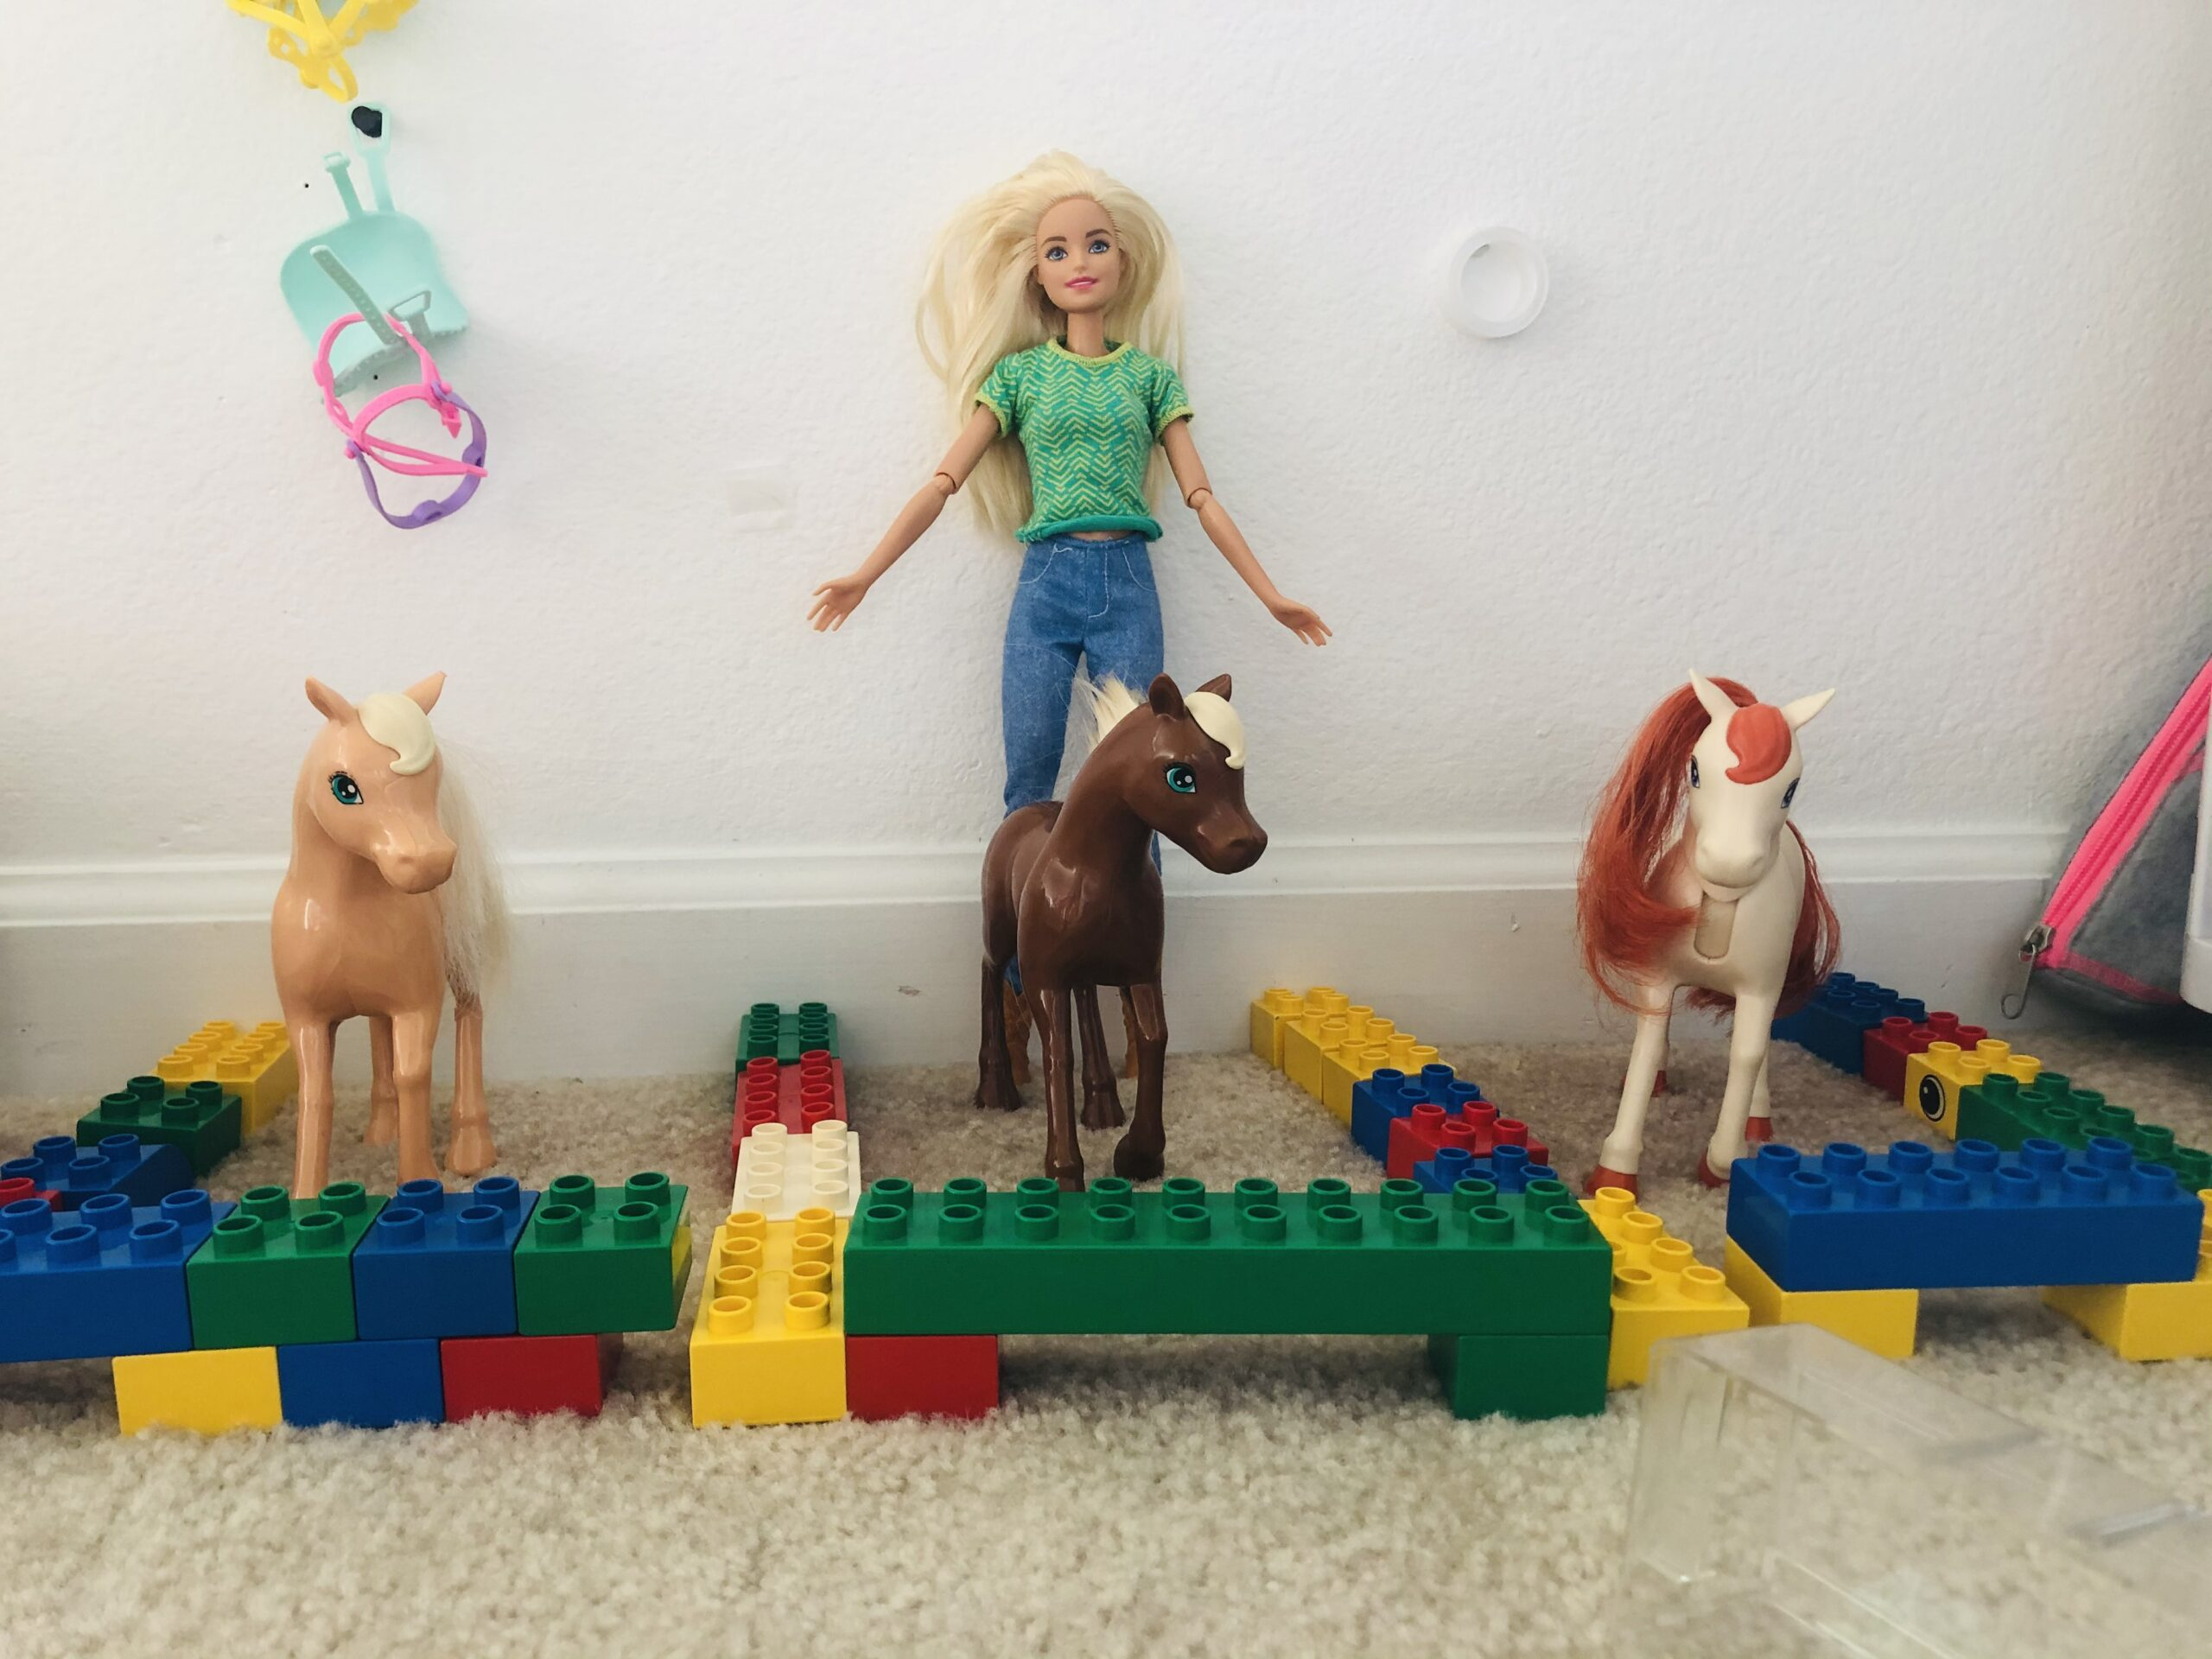 A Barbie Doll and some horses.